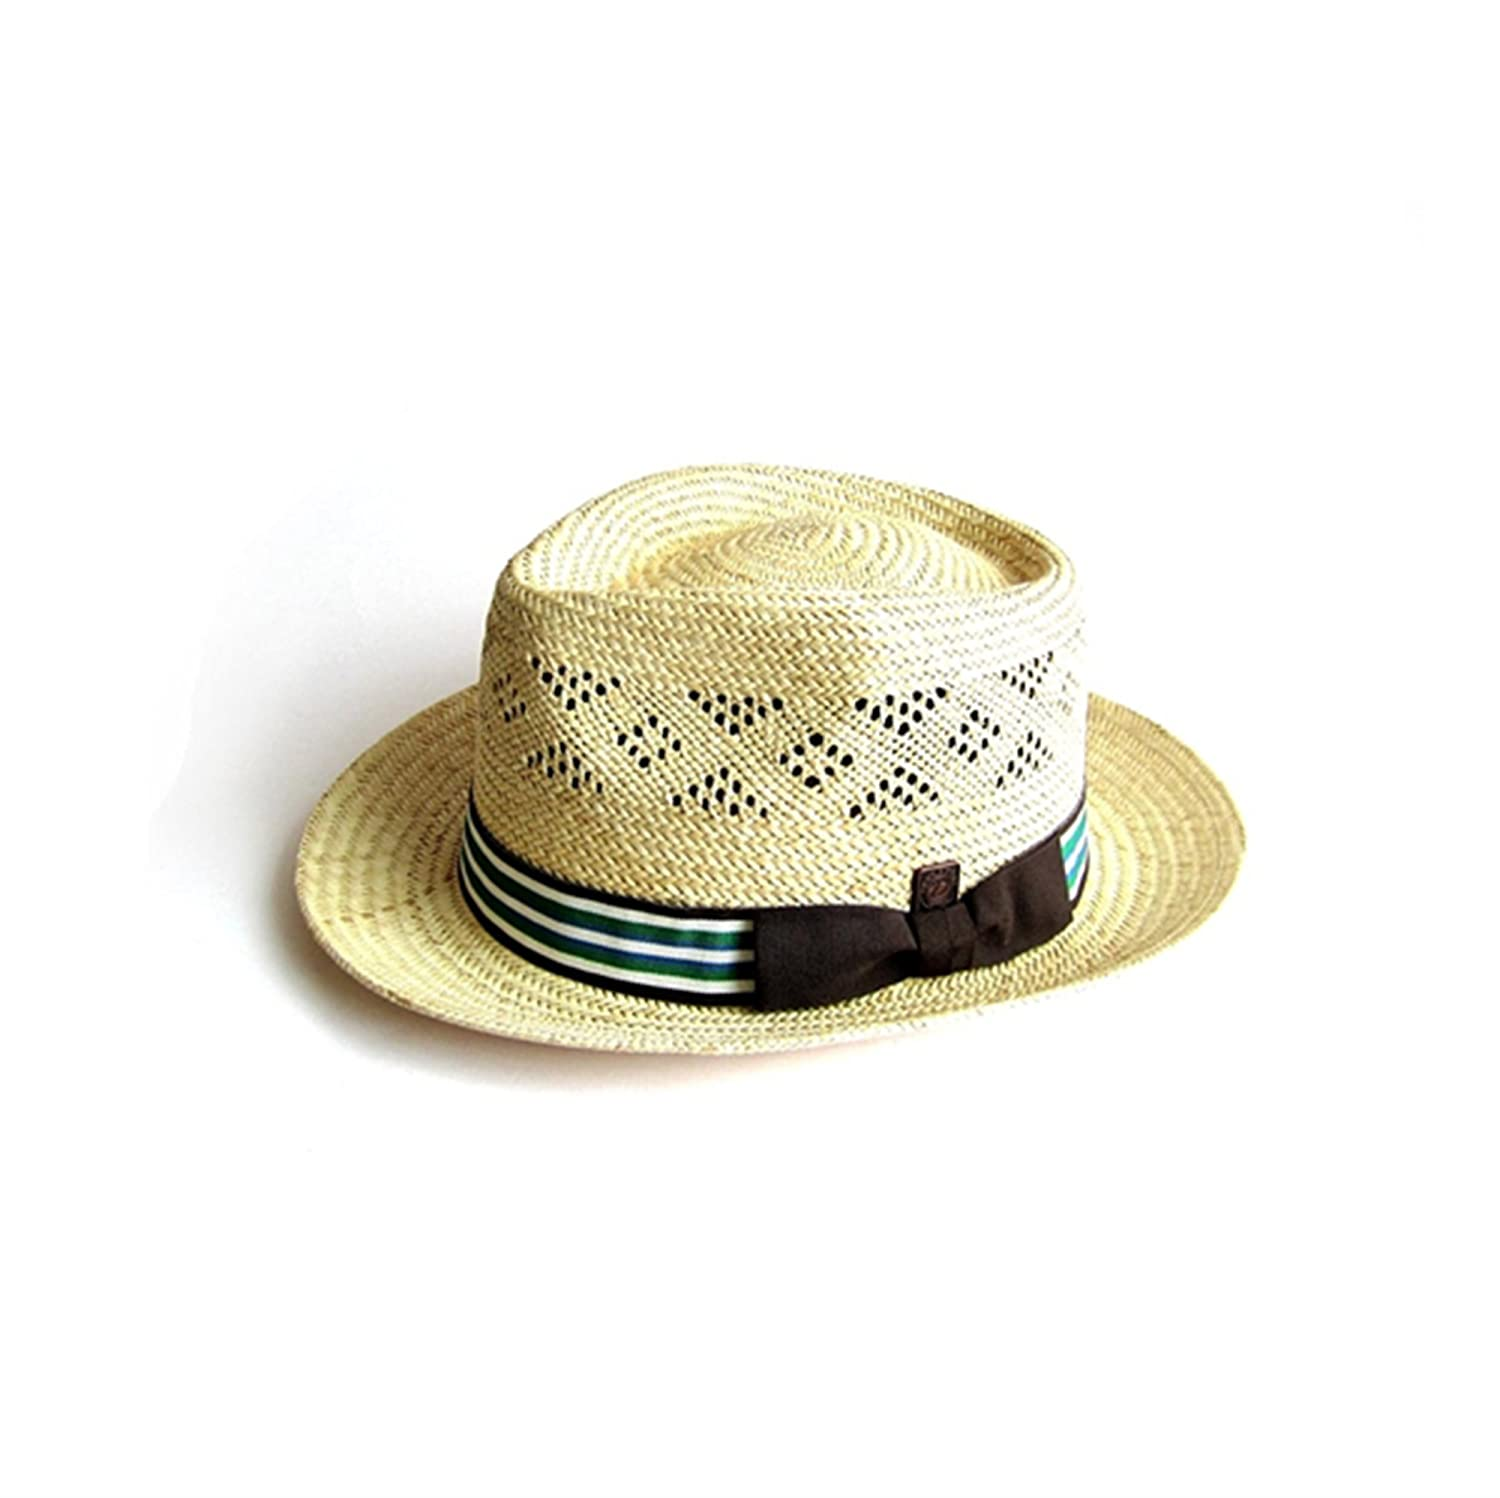 Dasmarca Mens Summer Palm Straw Fedora Hat - Bahamas